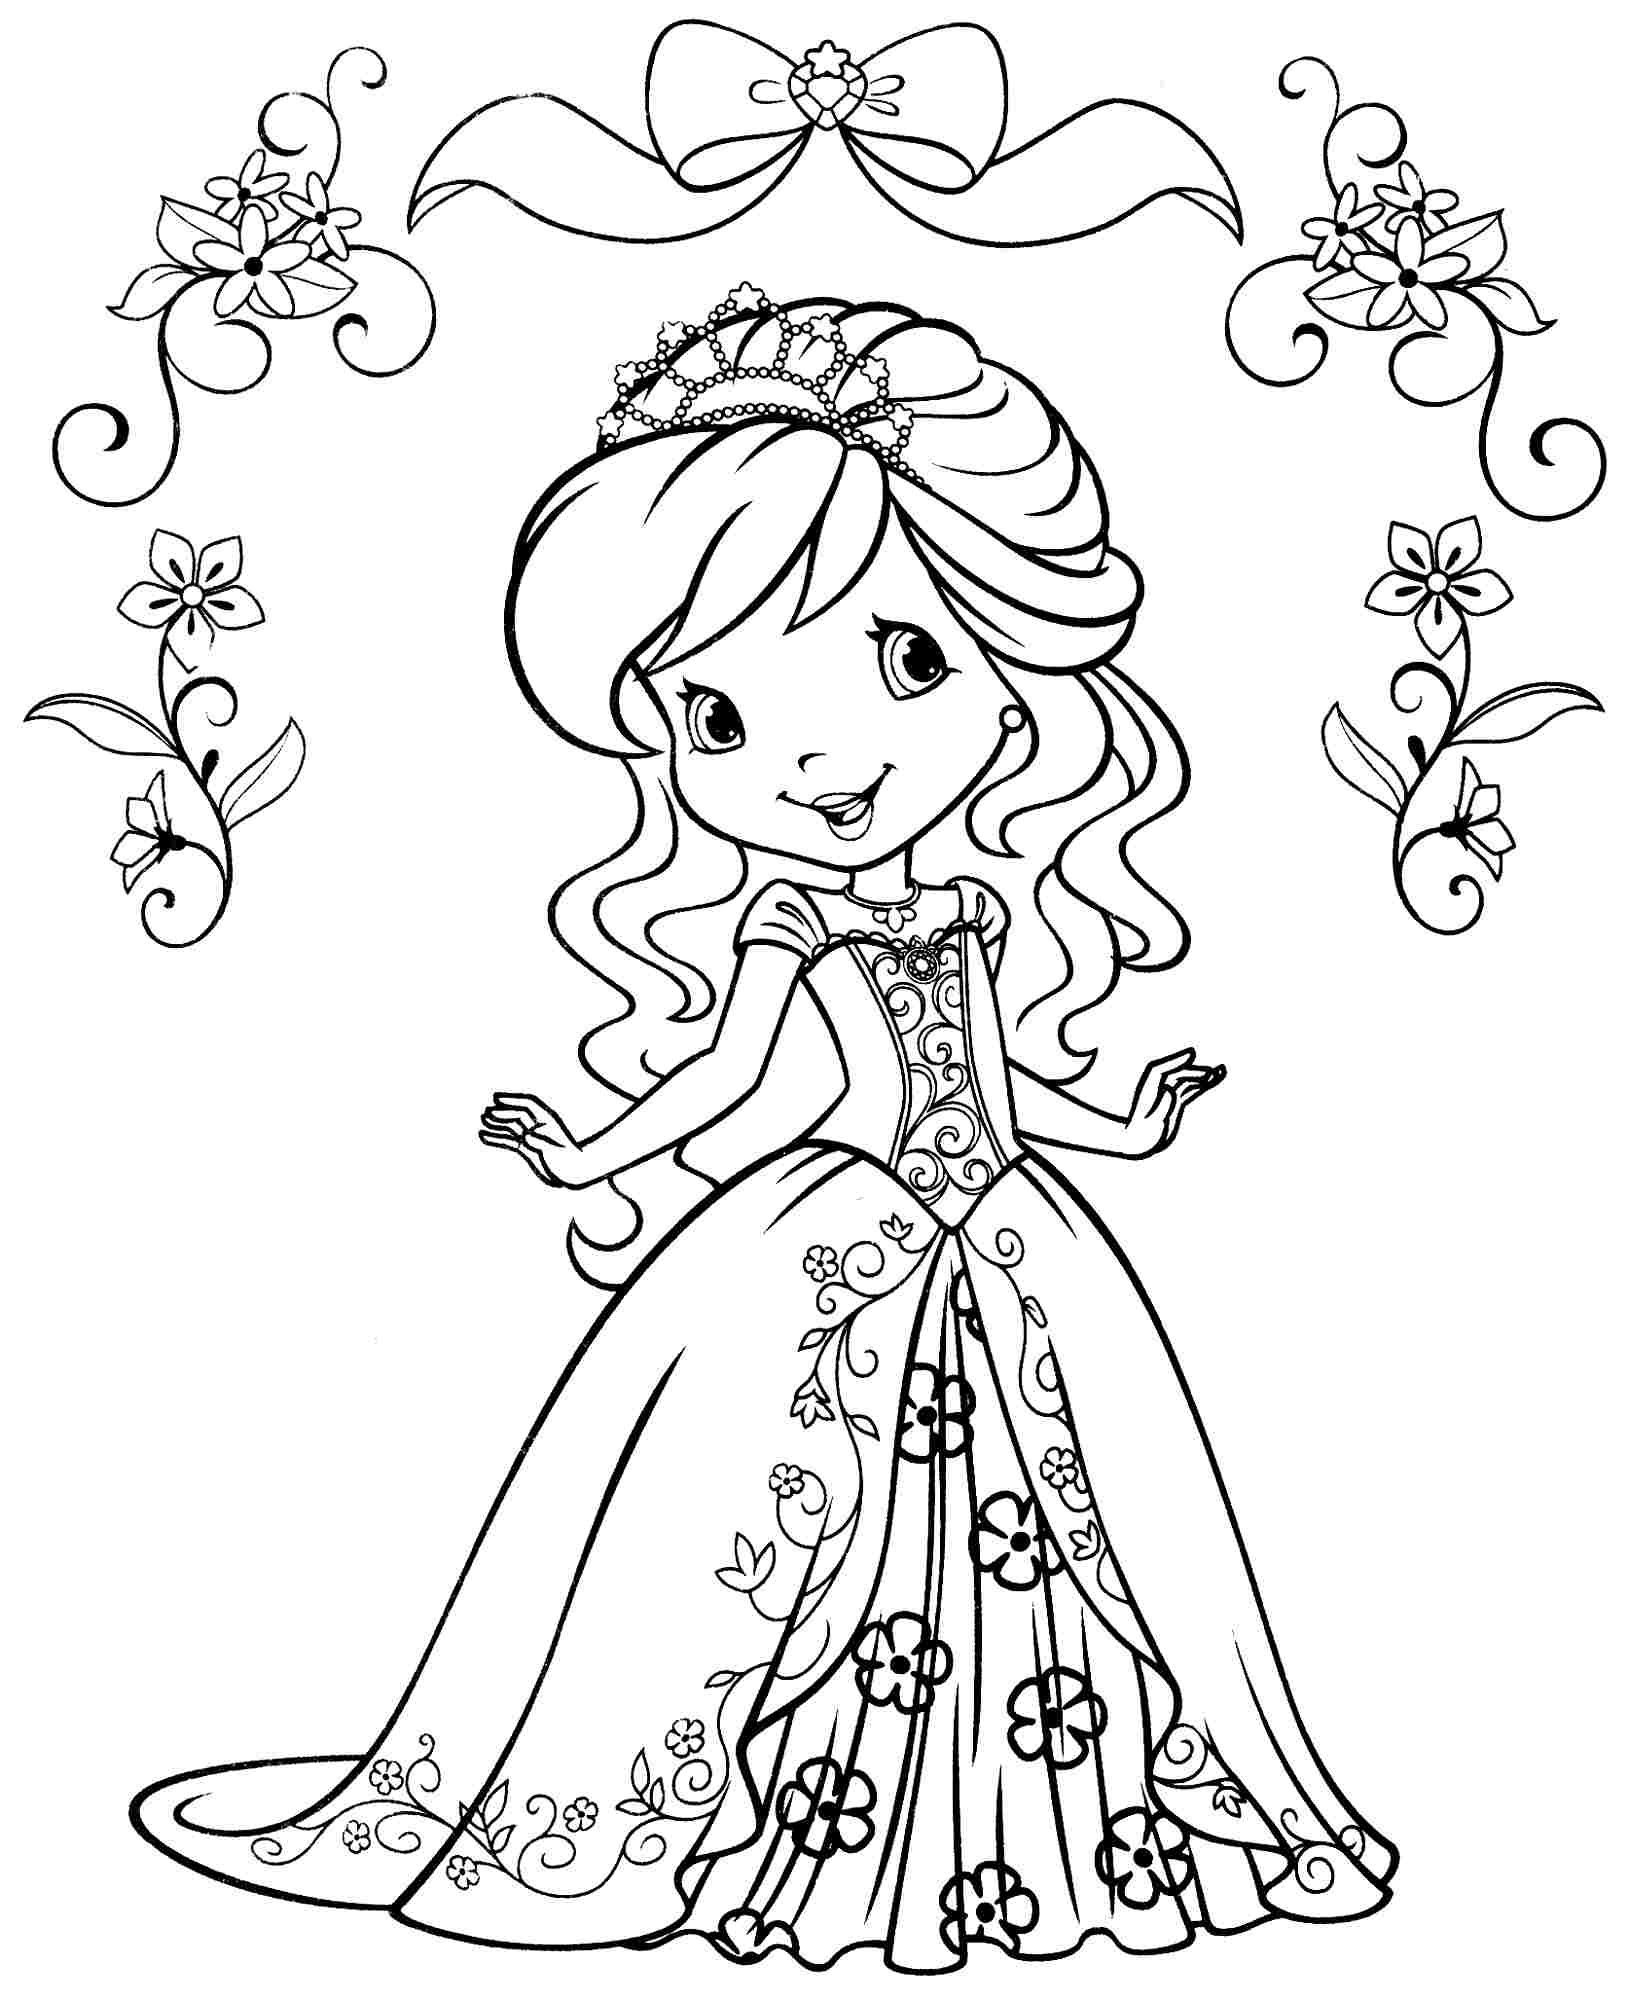 new strawberry shortcake coloring pages printable strawberry shortcake coloring page strawberry shortcake coloring shortcake strawberry printable new pages